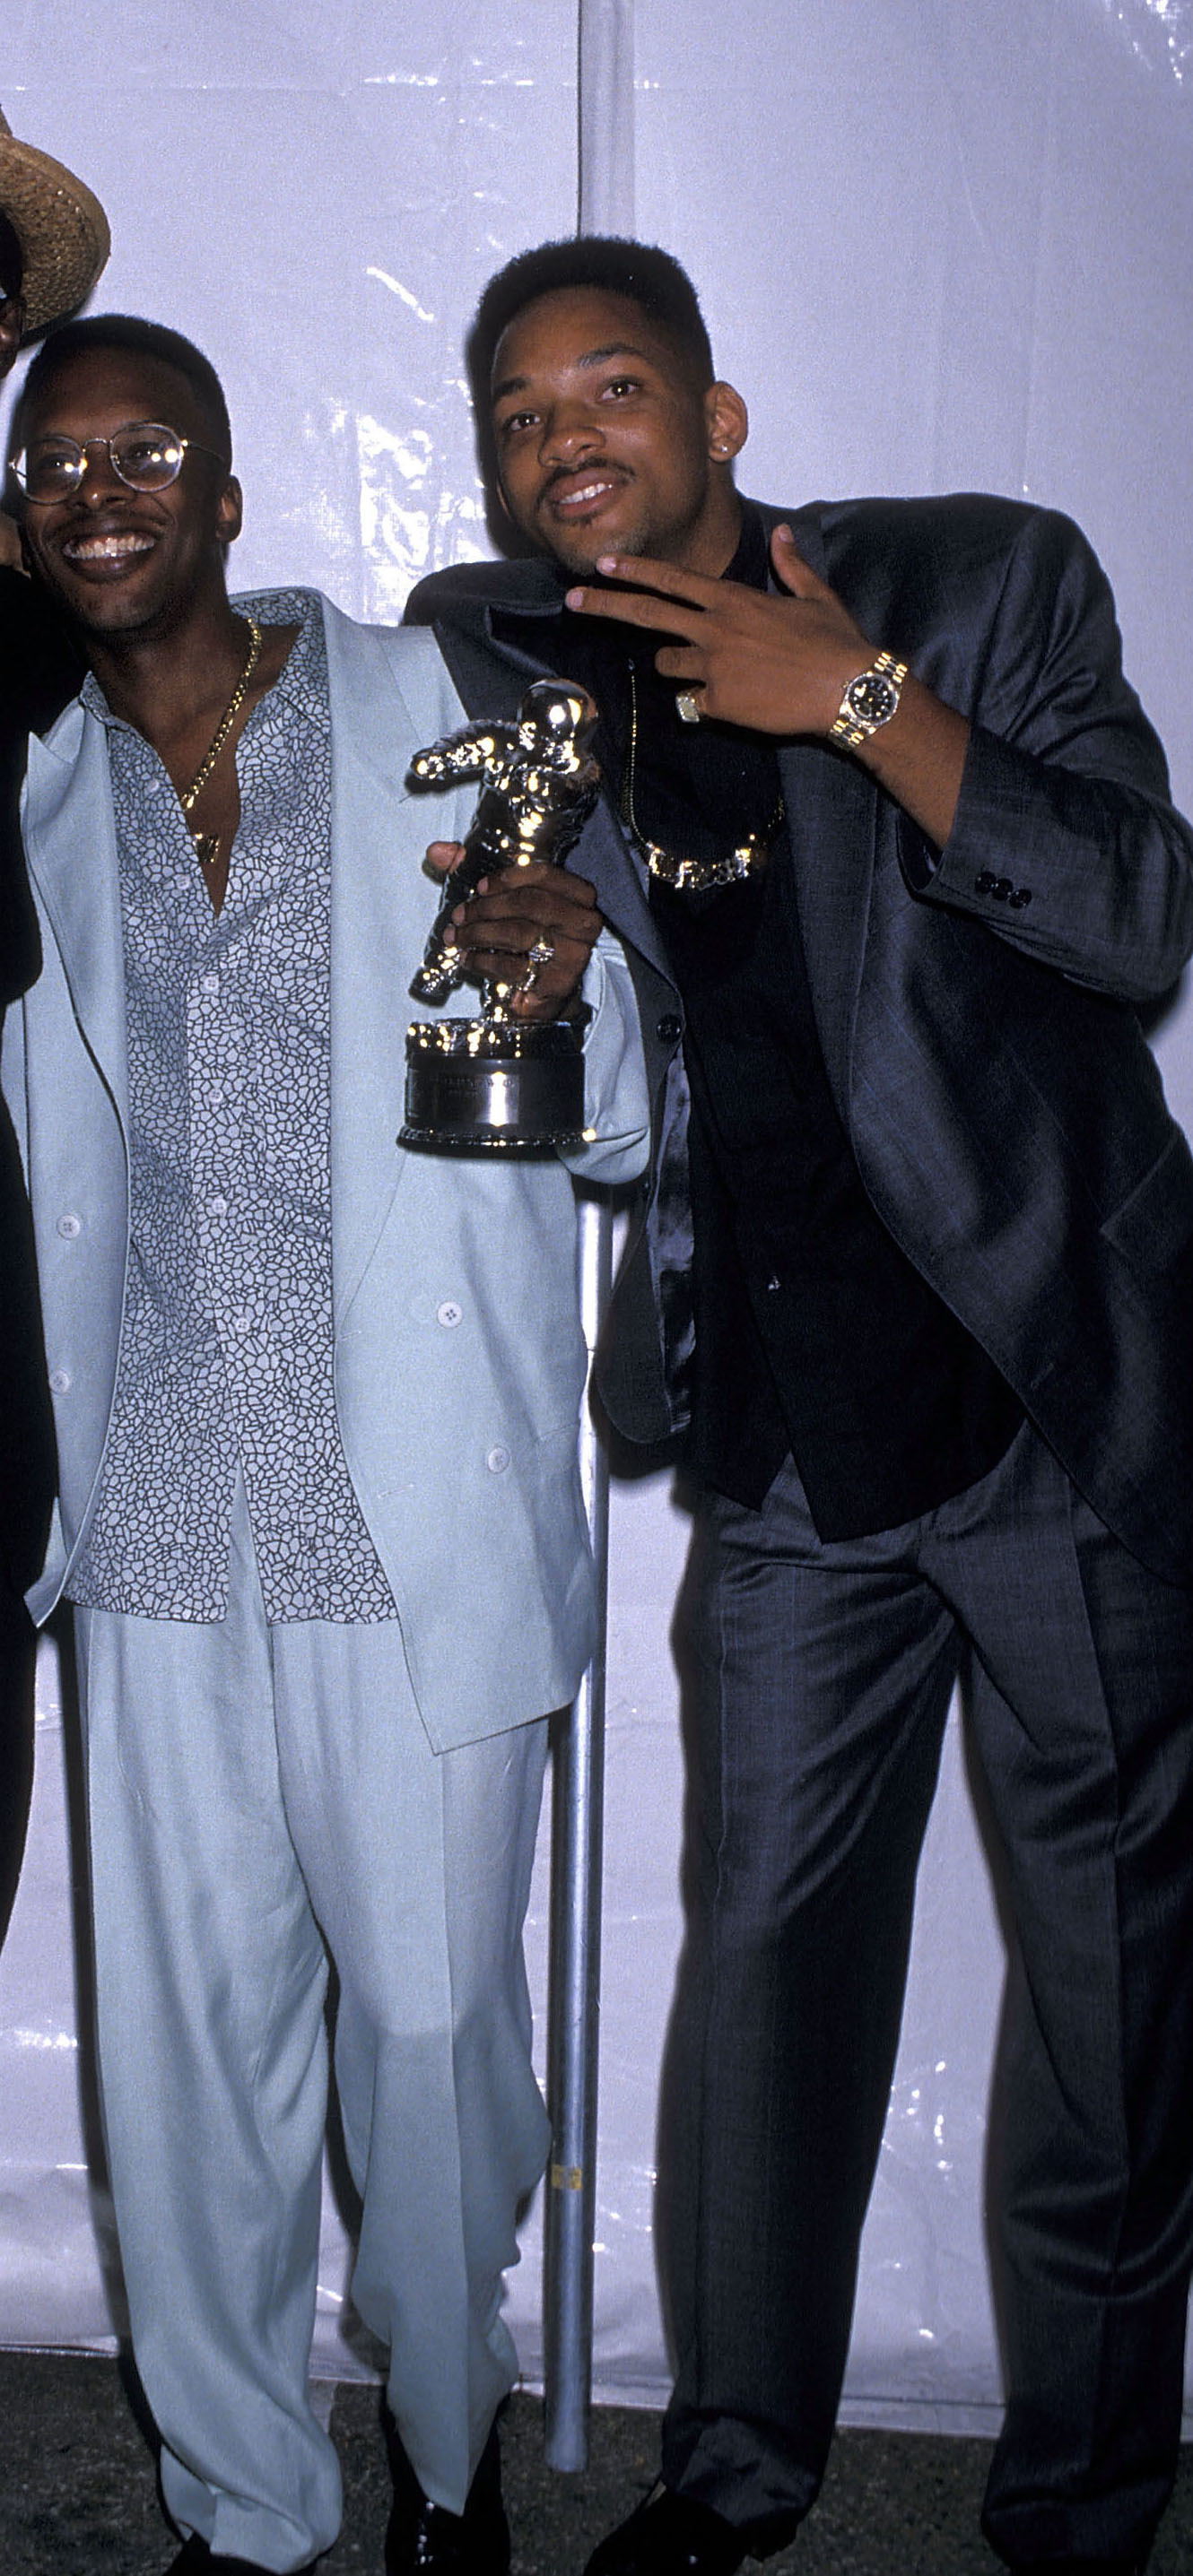 Hip hop producer DJ Jazzy Jeff and rapper Will Smith attend the Sixth Annual MTV Video Music Awards at Universal Amphitheatre in Universal City, California on Sept. 6, 1989.